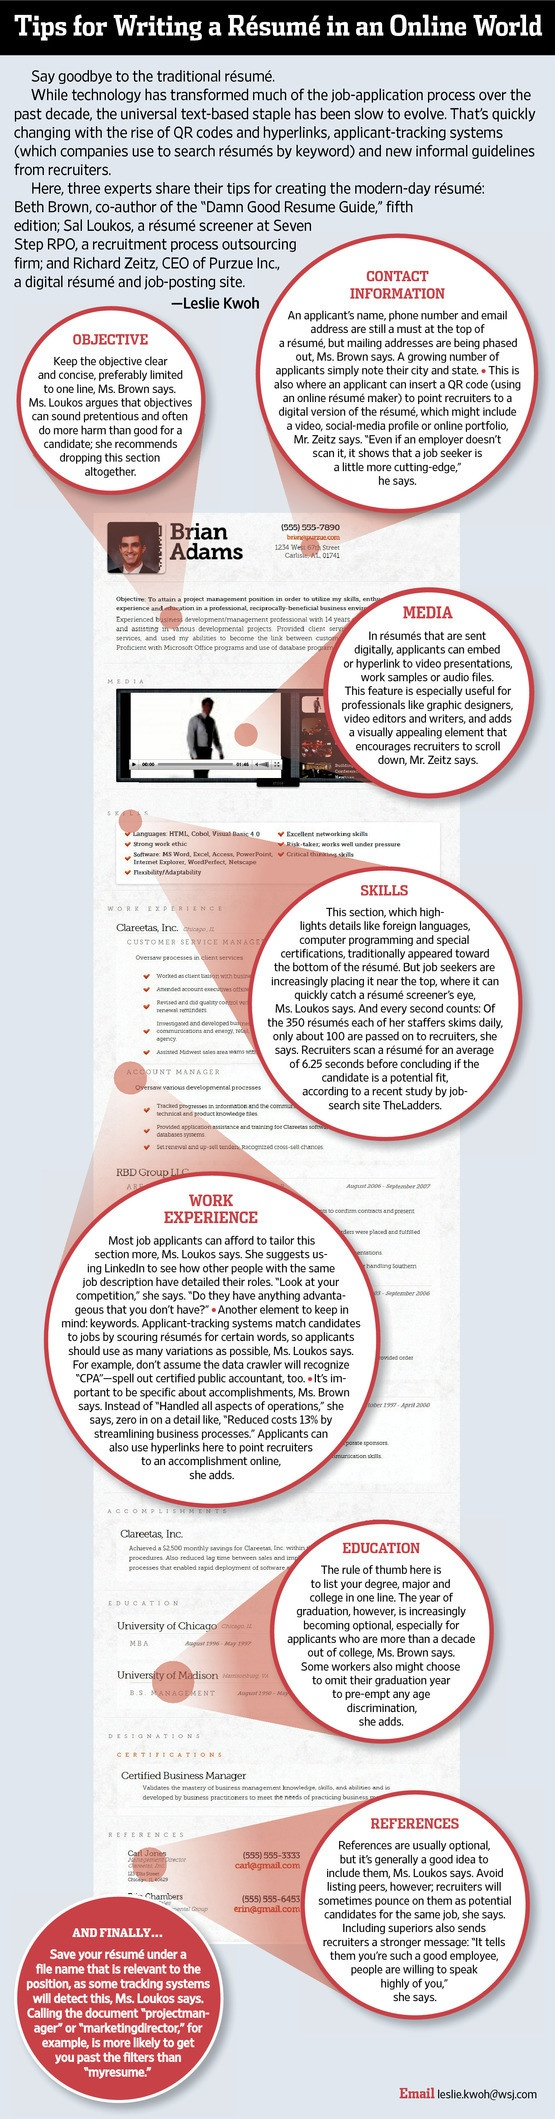 tips for writing a resume in an online world via wsj - Tips For Writing A Resume